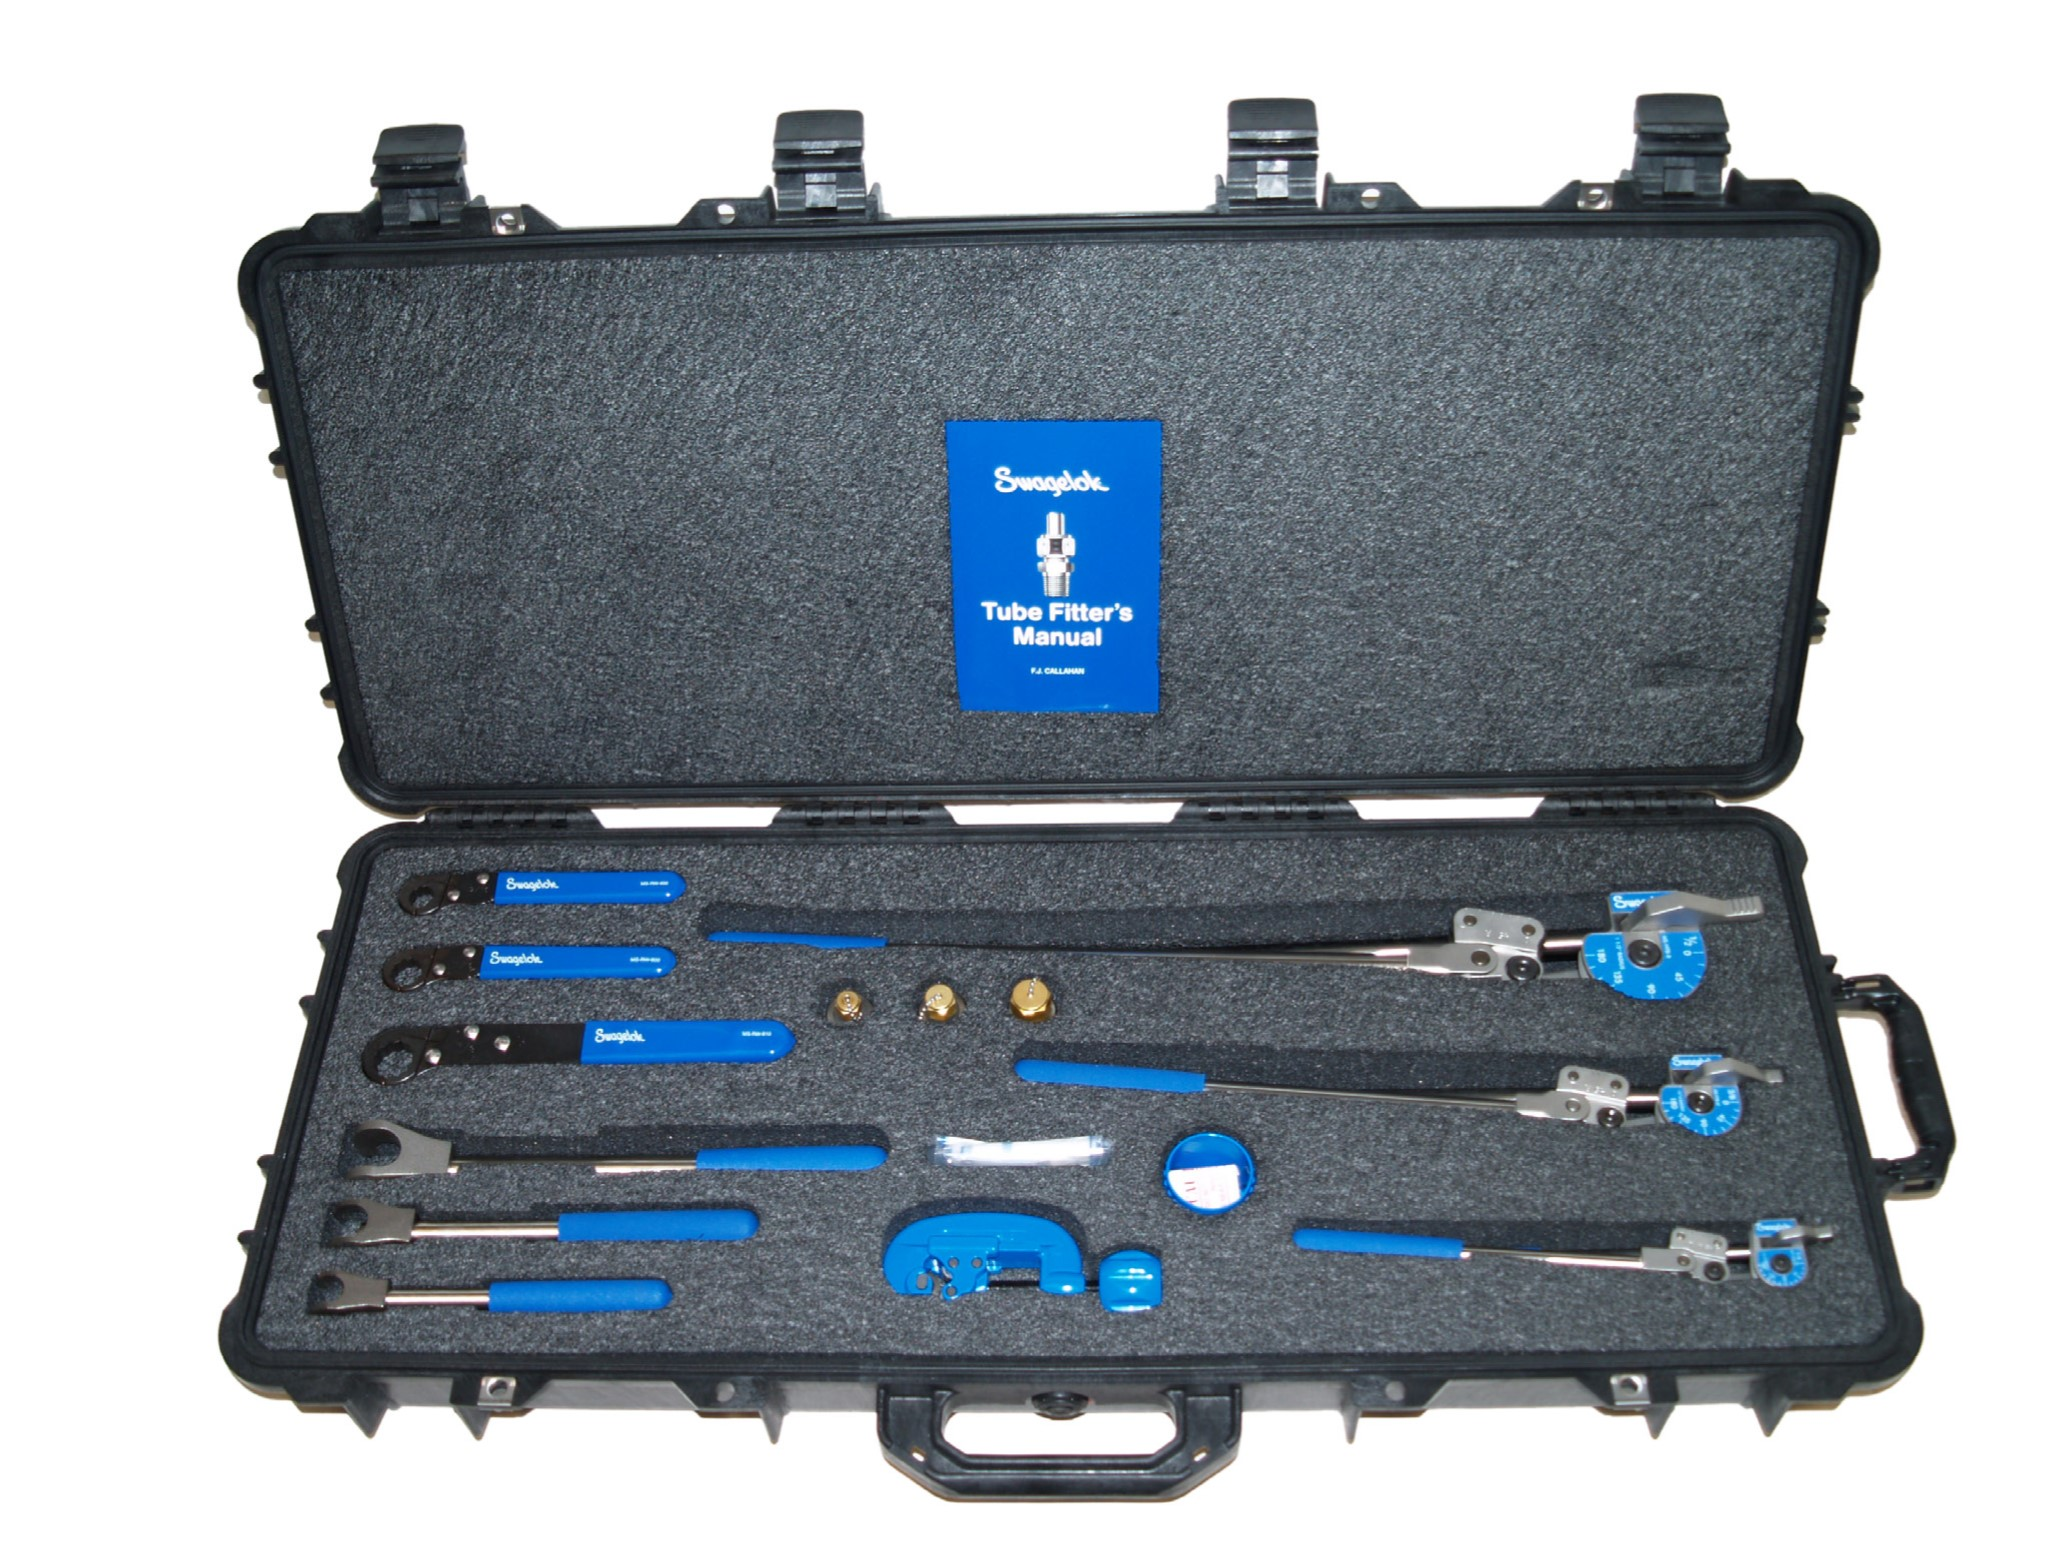 Tube Fitters Toolbox